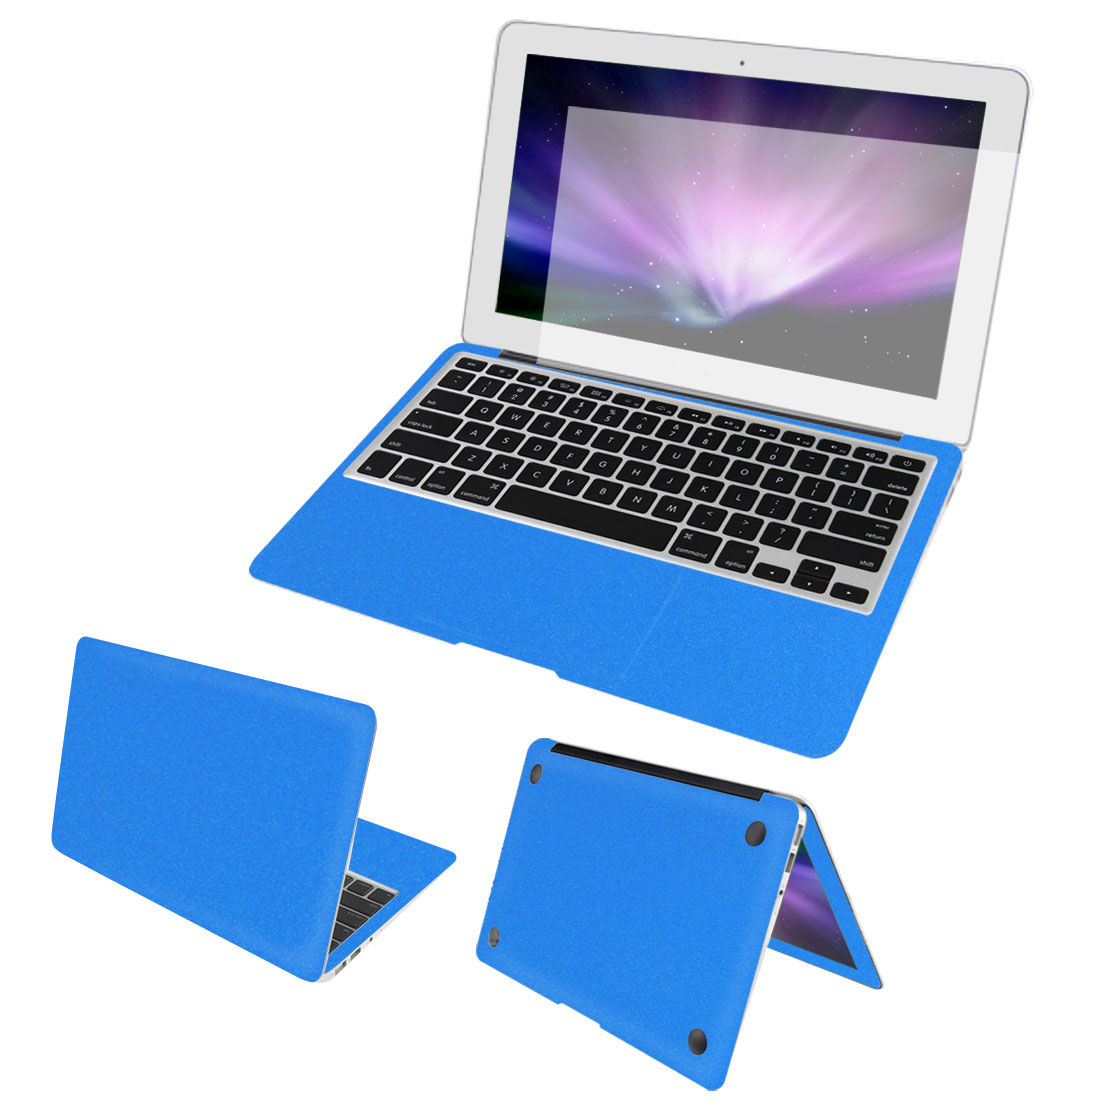 Blue Full Body Wrap Protector Decal Skin Cover Screen Film for Macbook Pro 15""